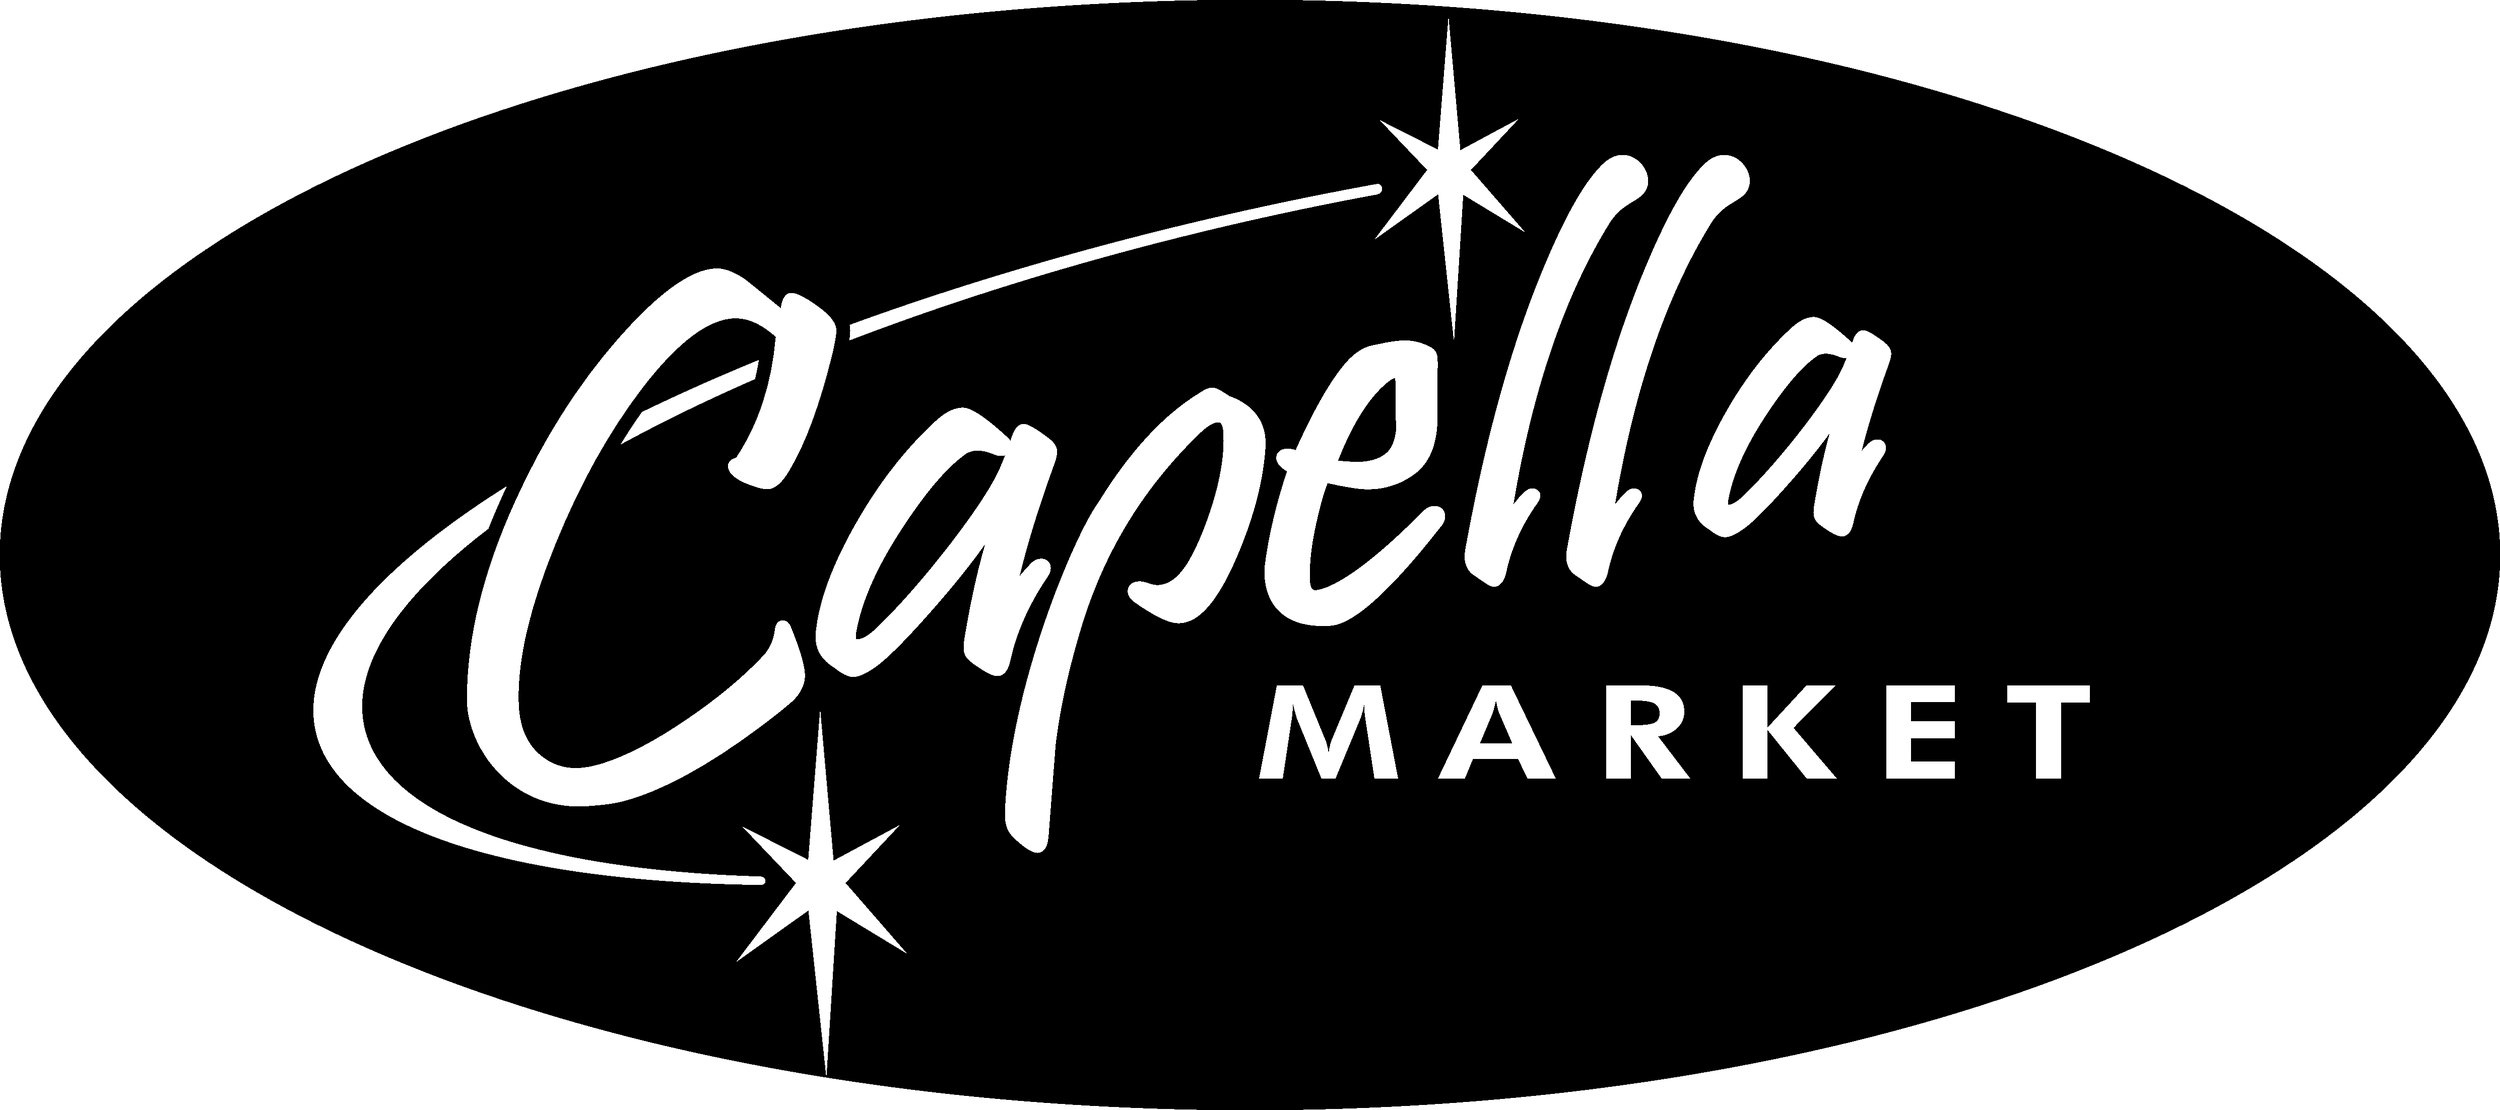 Image result for capella market